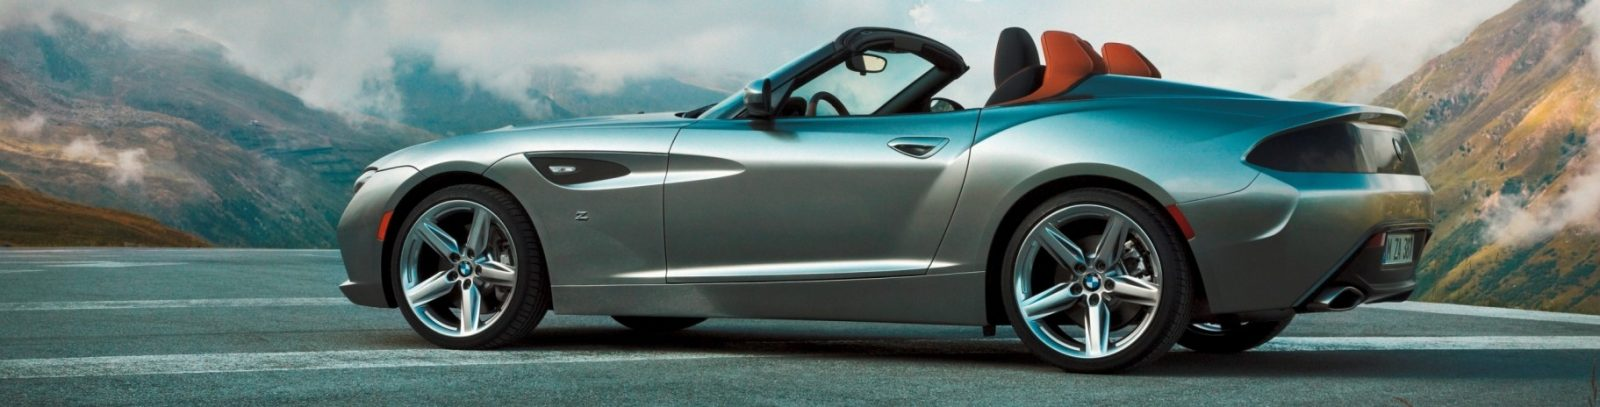 Concept Flashback 2012 Bmw Zagato Z4 Roadster And Coupe 43